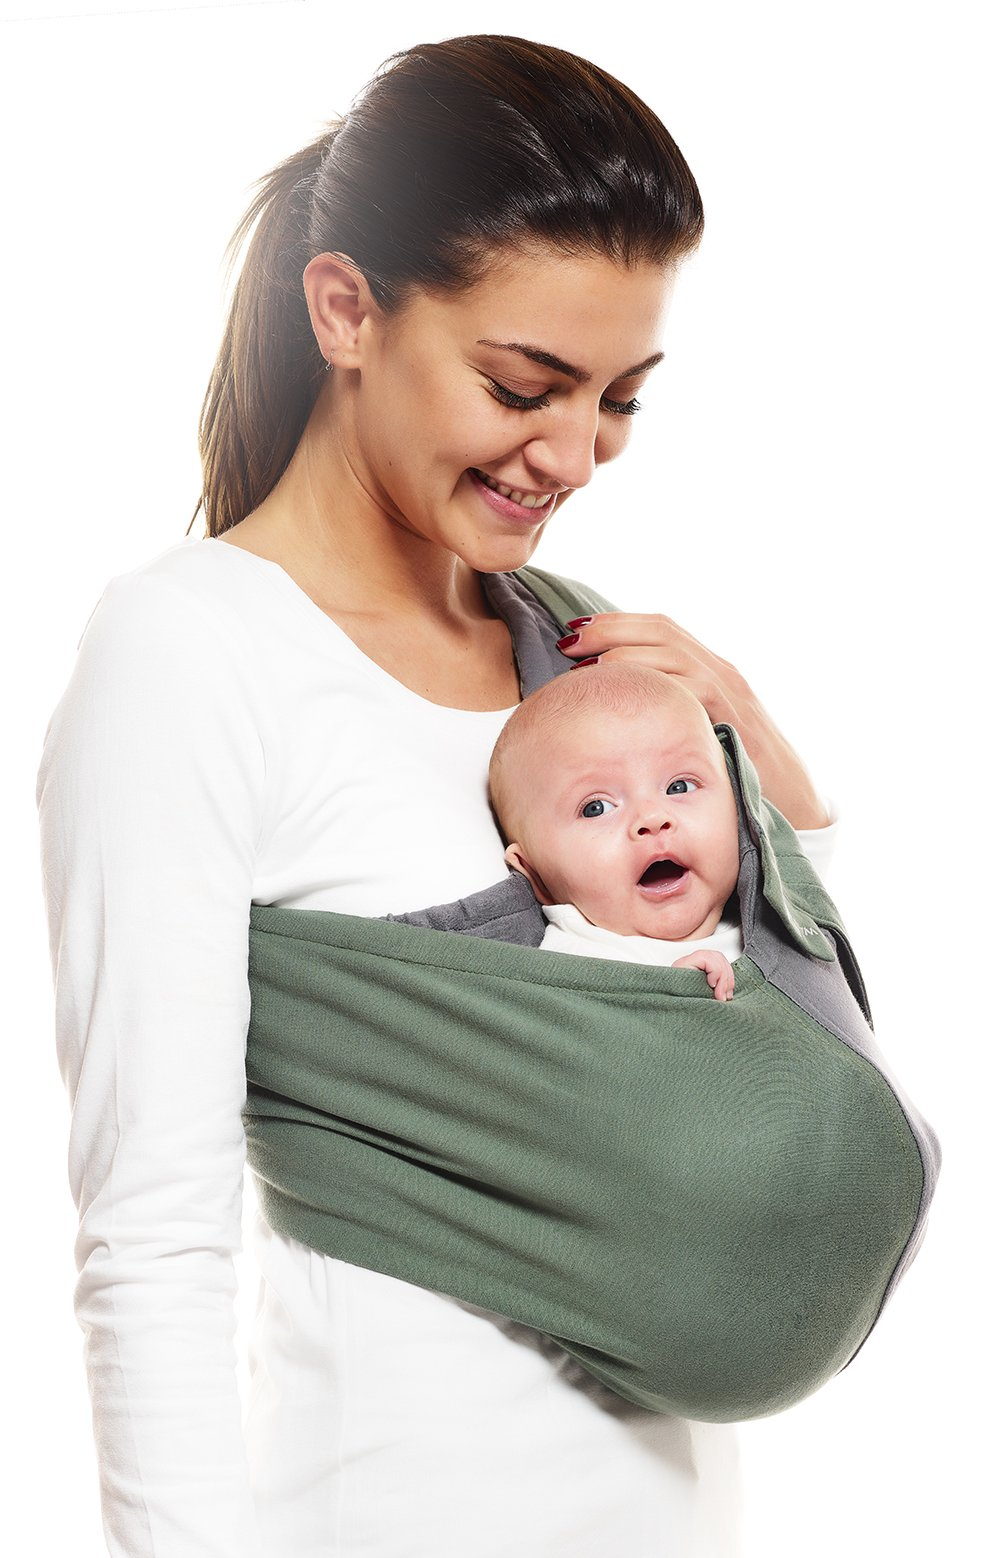 Wallaboo Wrap Sling Carrier Connection, Easy Adjustable, Ergonomic, 3 Carrying Positions, Newborn 8lbs to 33 lbs, Soft Breathable Cotton, 3 Sitting Positions, EU Safety Tested, Color: Green / Grey Wallaboo One size fits all, adjustable in size to fit every mum and dad Can be used for a preemie up to 33 pound child Keeps baby warm in 3 different positions: sleep, sit and active 1